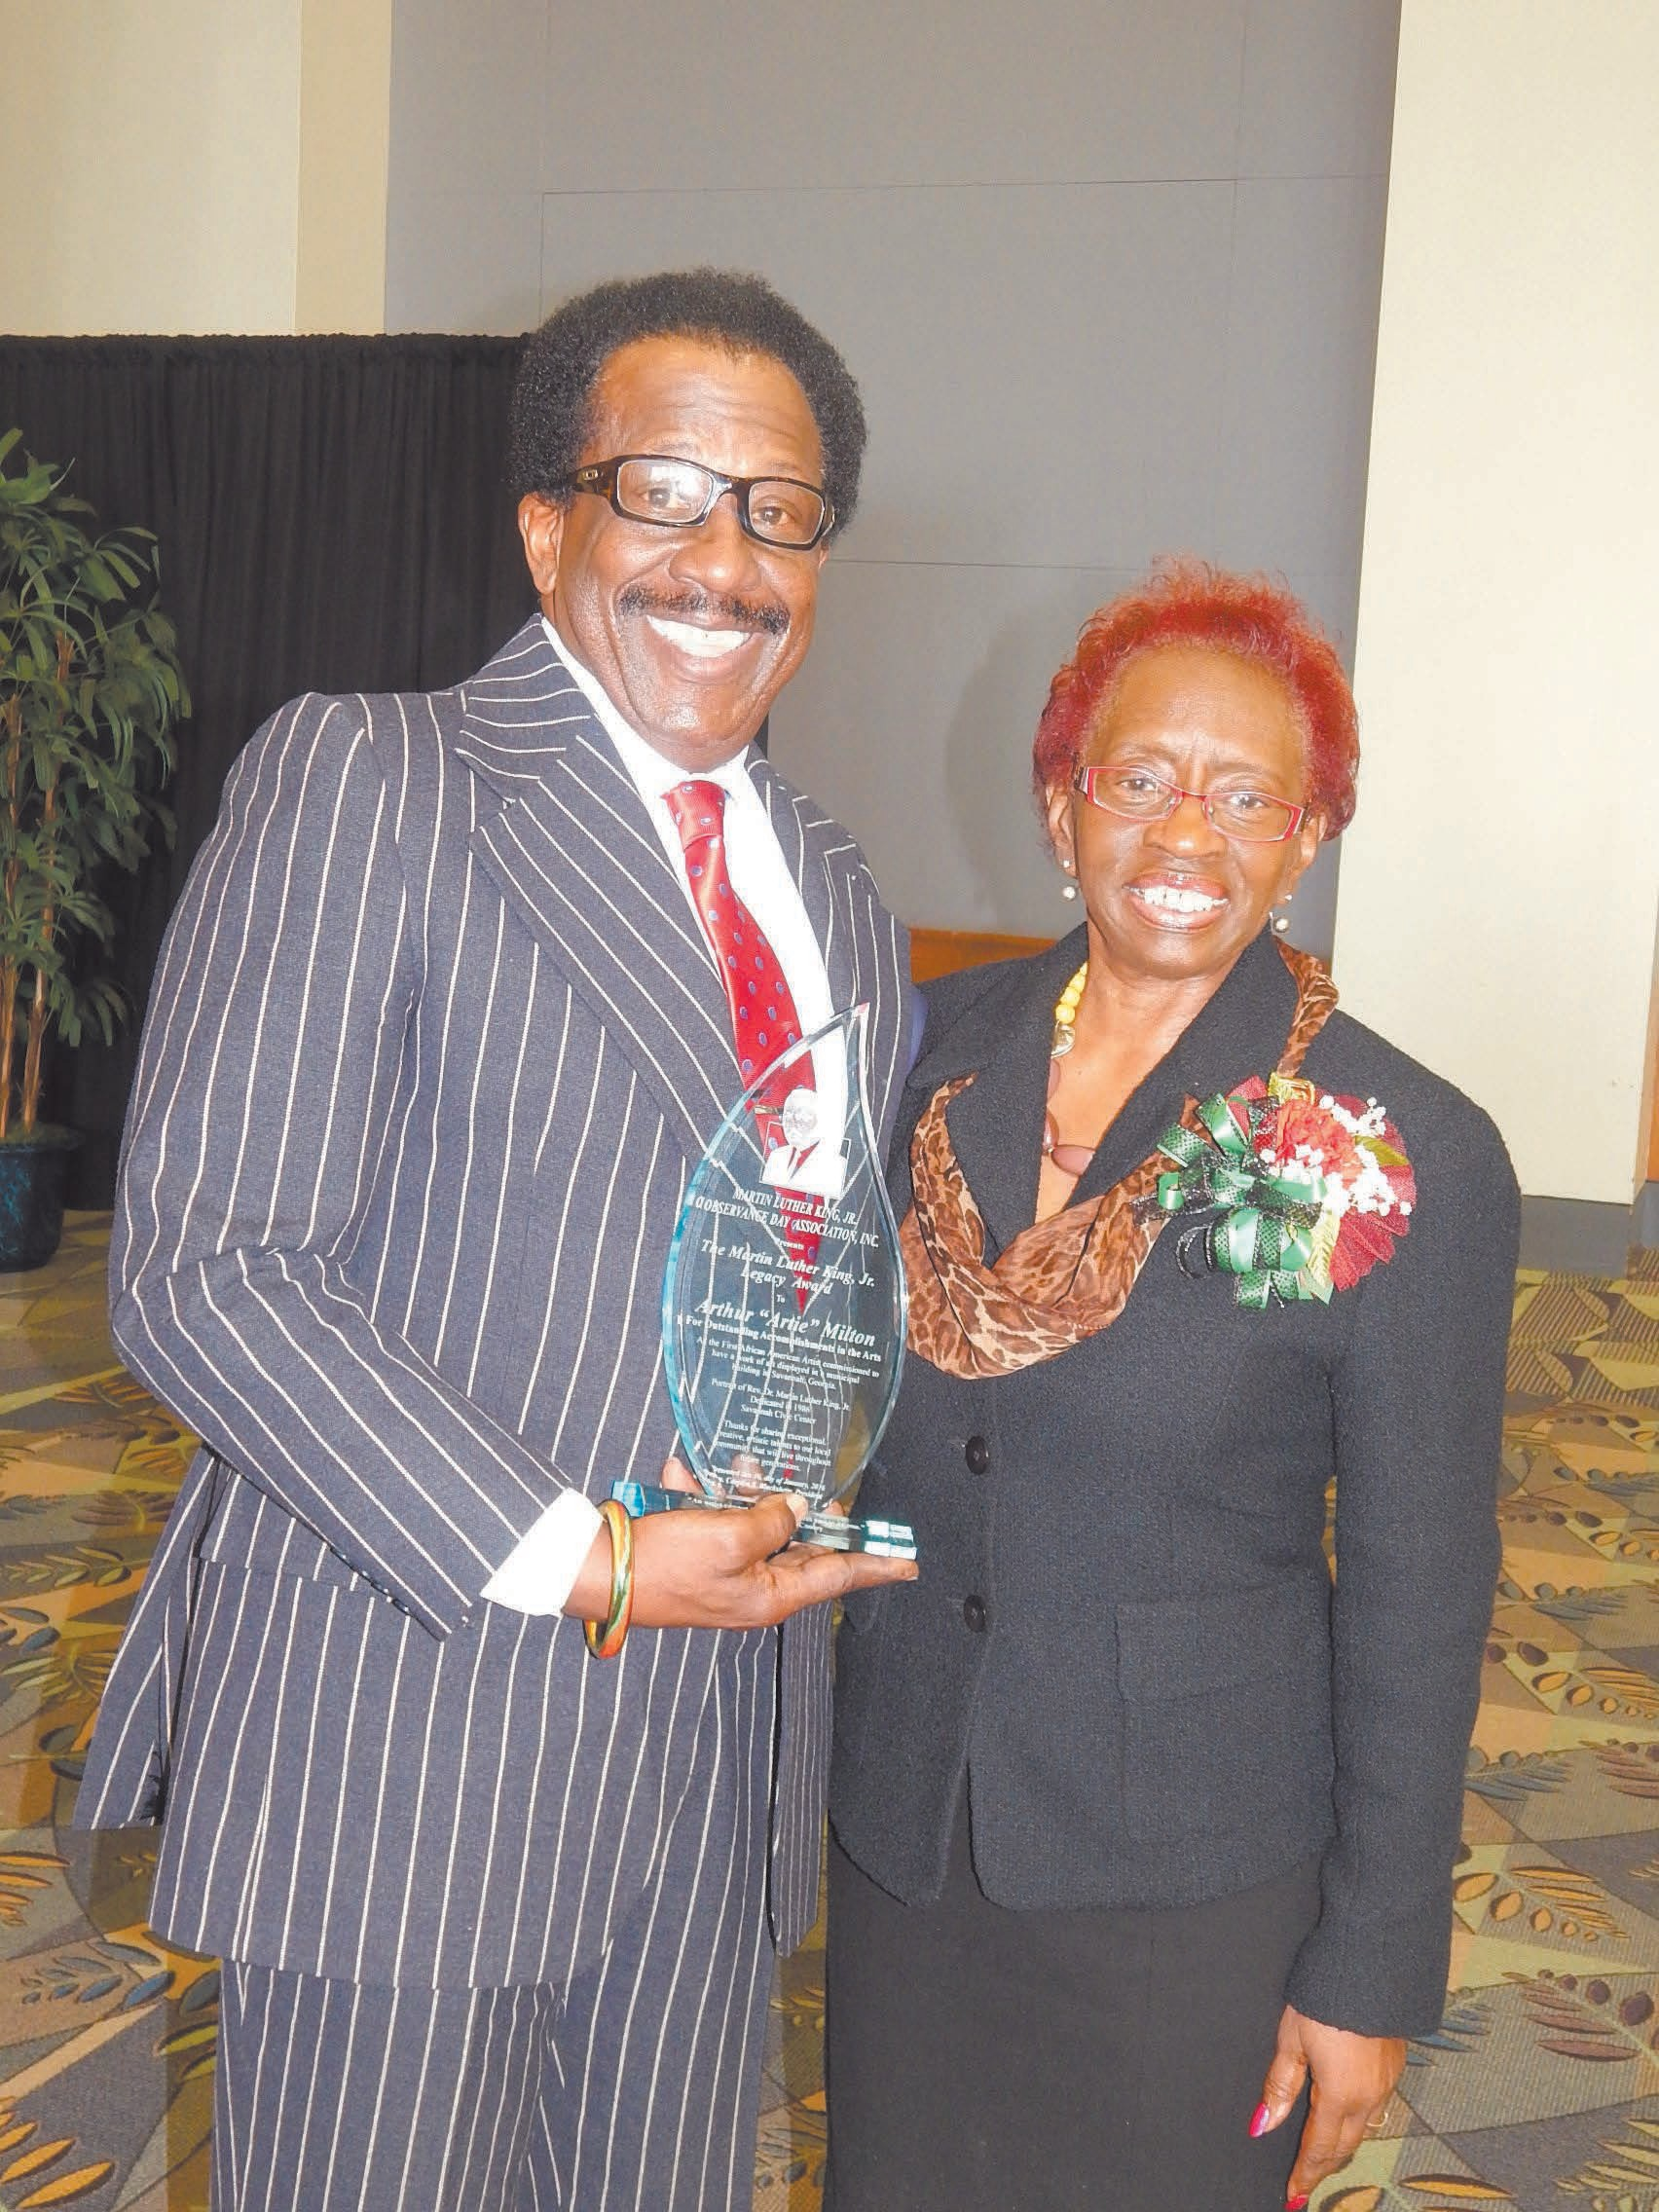 MLK Oberservance Day Committee President Carolyn Blackshear presents Artie Milton with the 2016 MLK Legacy Award for The Arts at the MLK Business and Community Unity Brunch held Saturday, January 16, 2016 at the International Trade and Convention Center. For more scenes of the 2016 MLK Observance Day Activities see page 9. For the listings of the upcoming